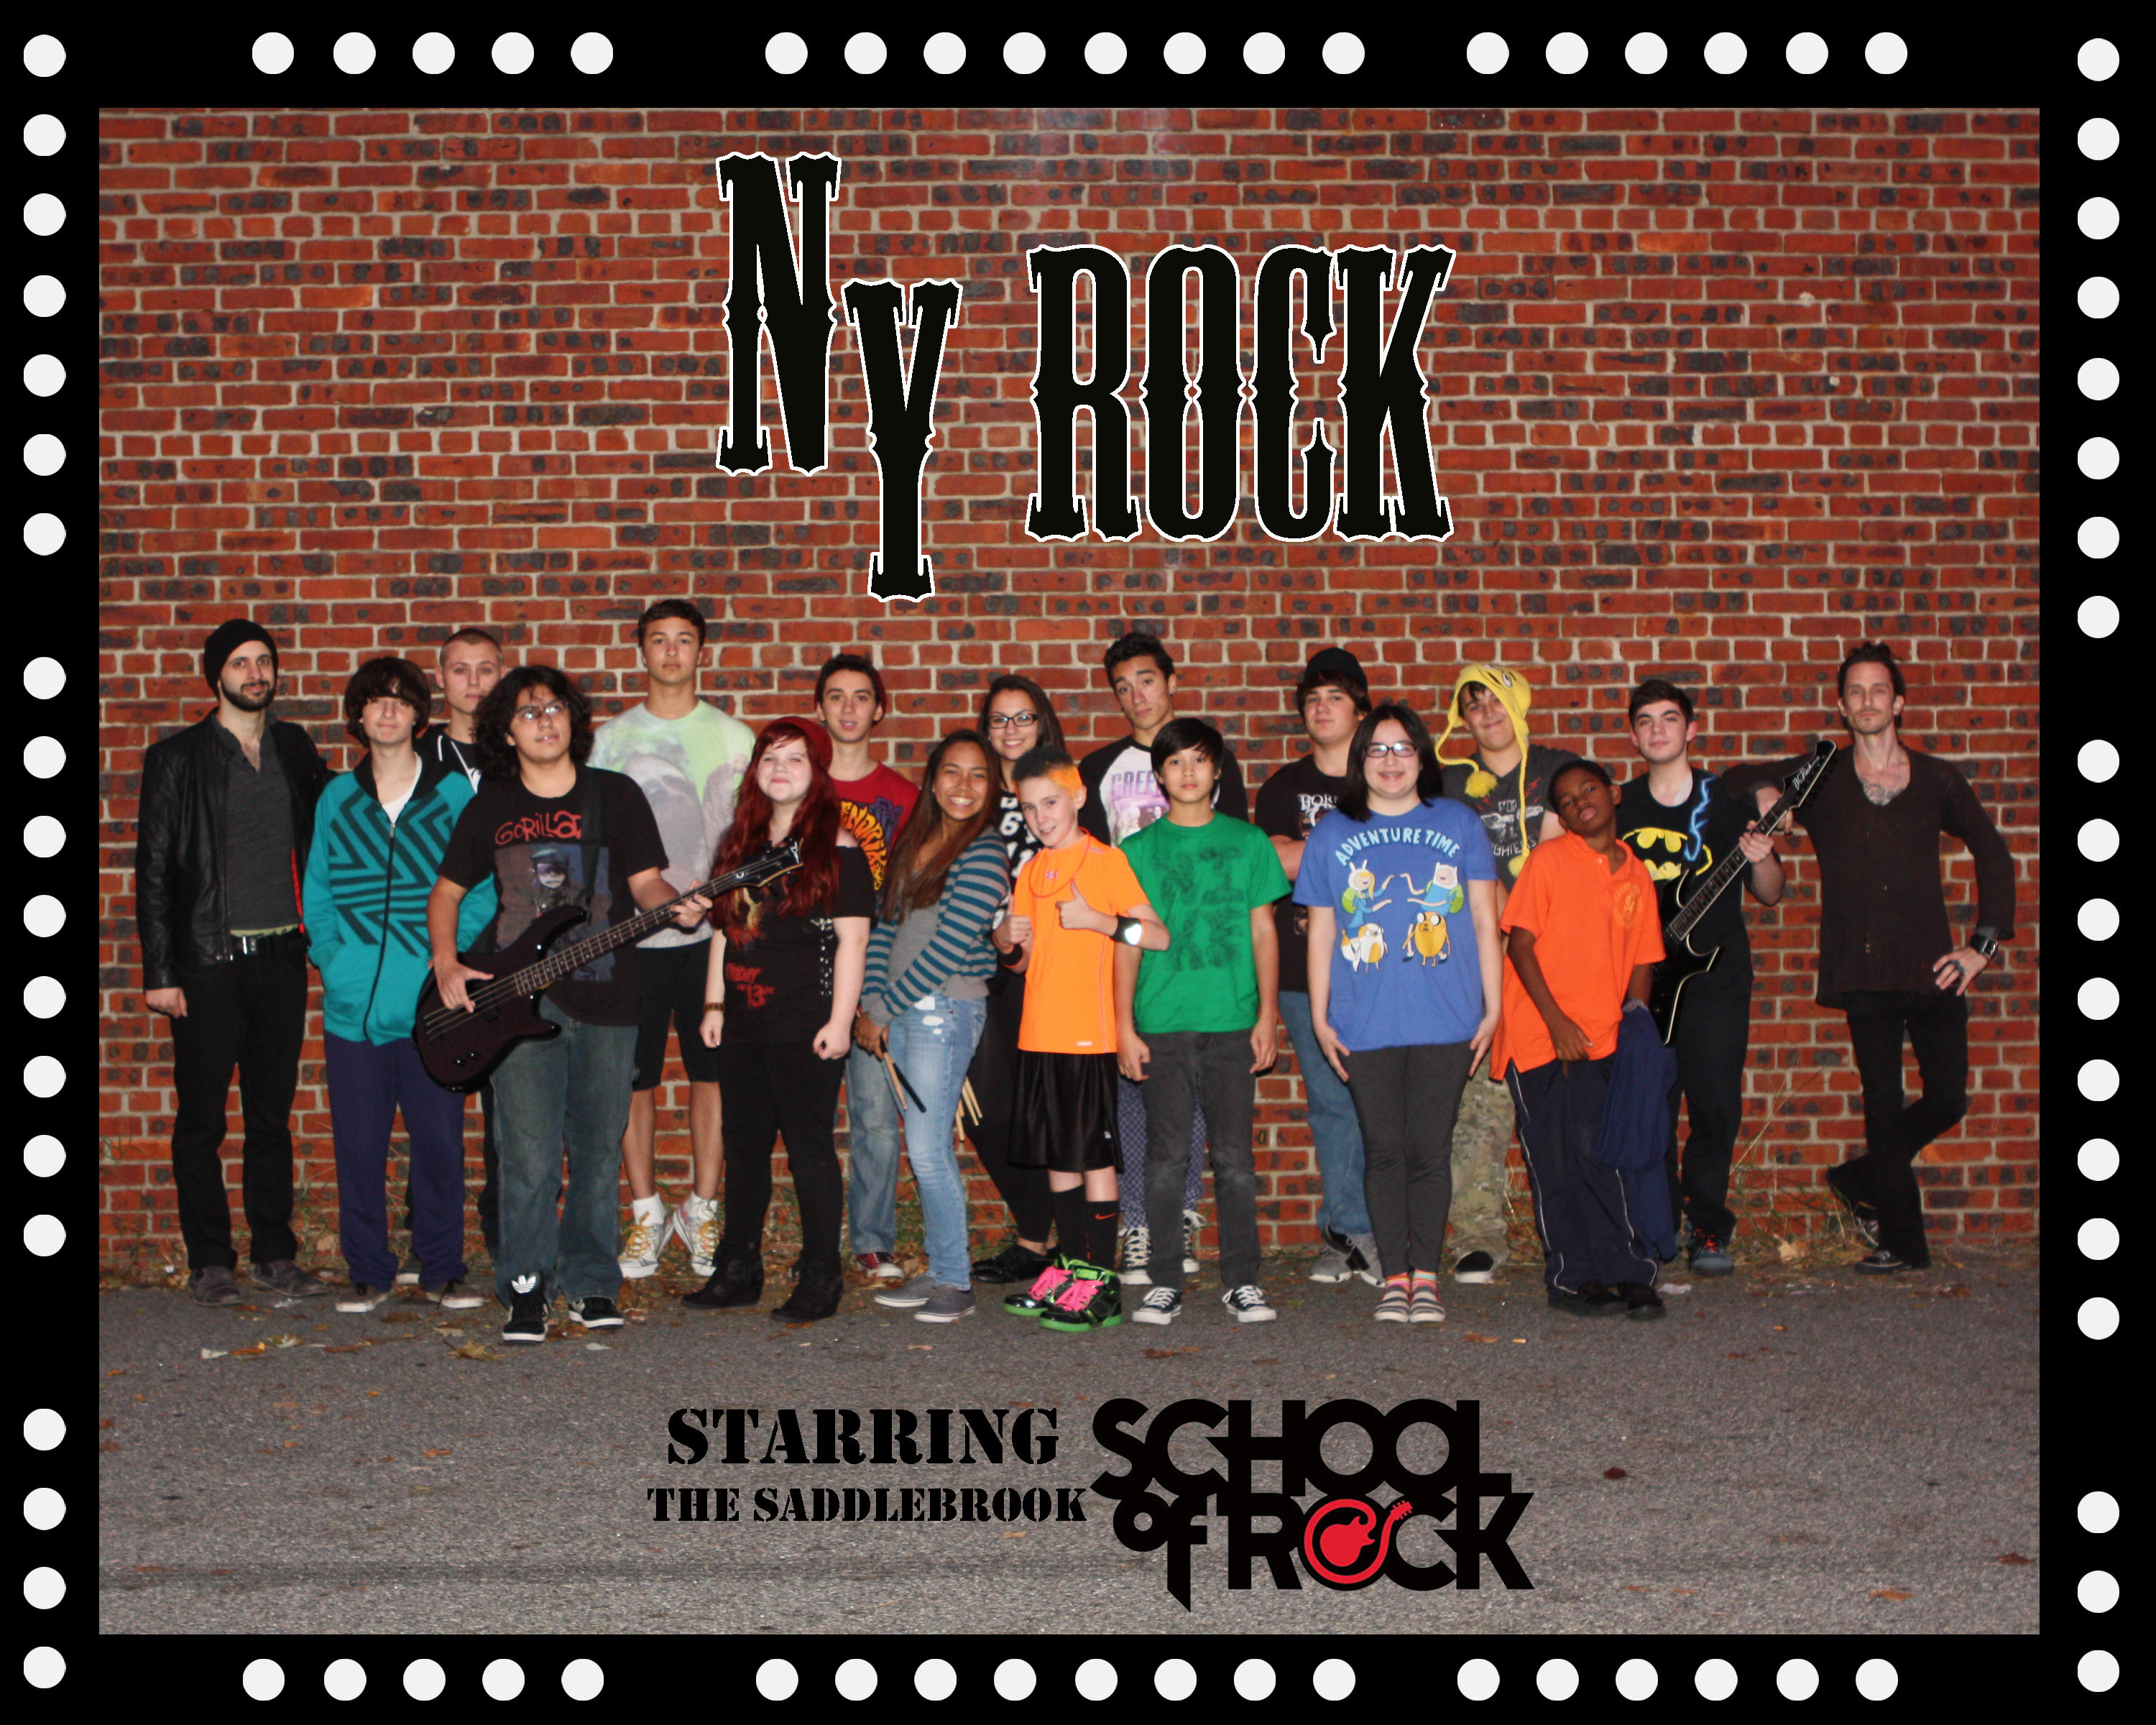 School of Rock Saddle Brook image 2